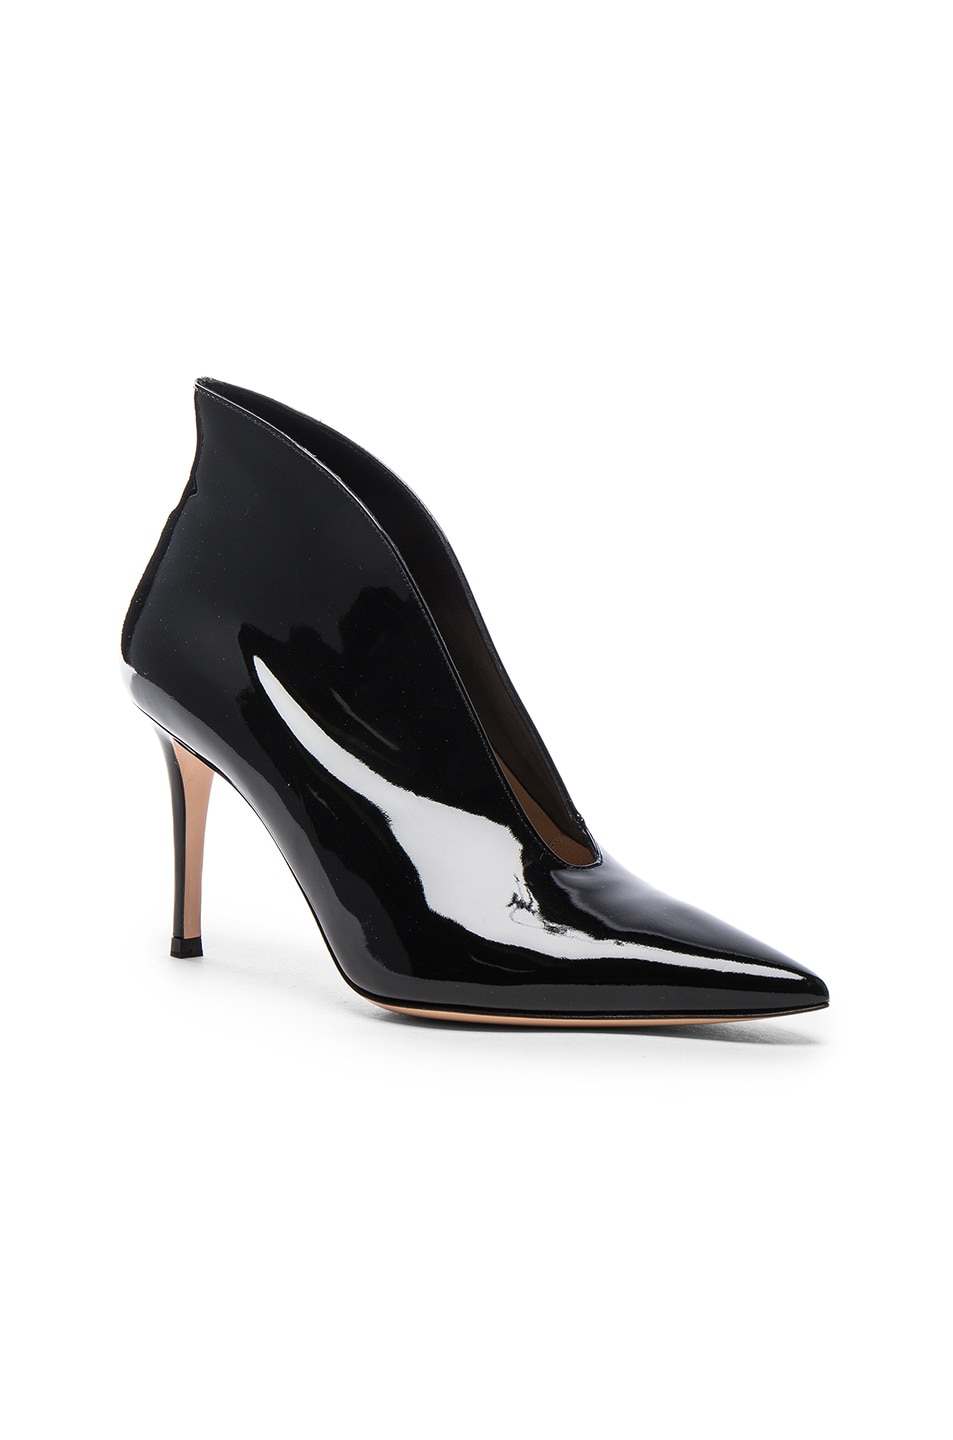 Image 2 of Gianvito Rossi Patent Cut Out Heels in Black